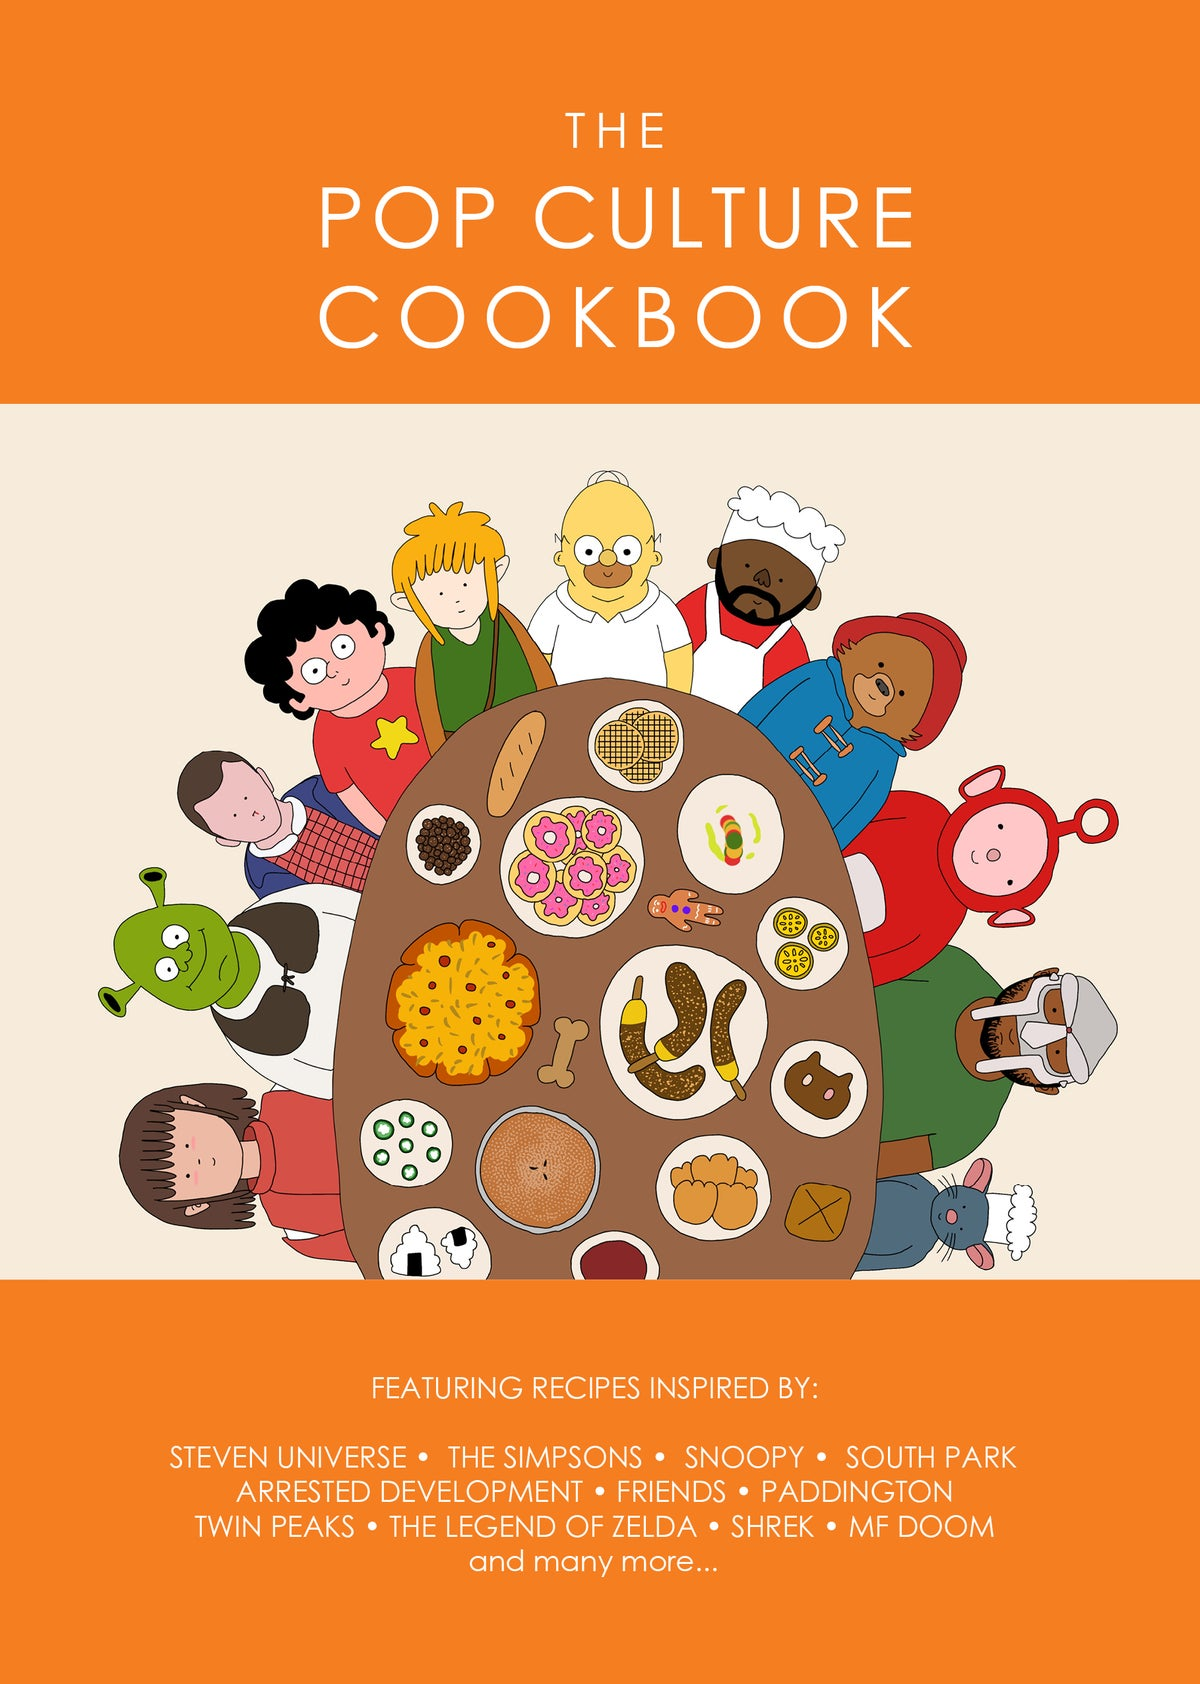 Image of The Pop Culture Cookbook